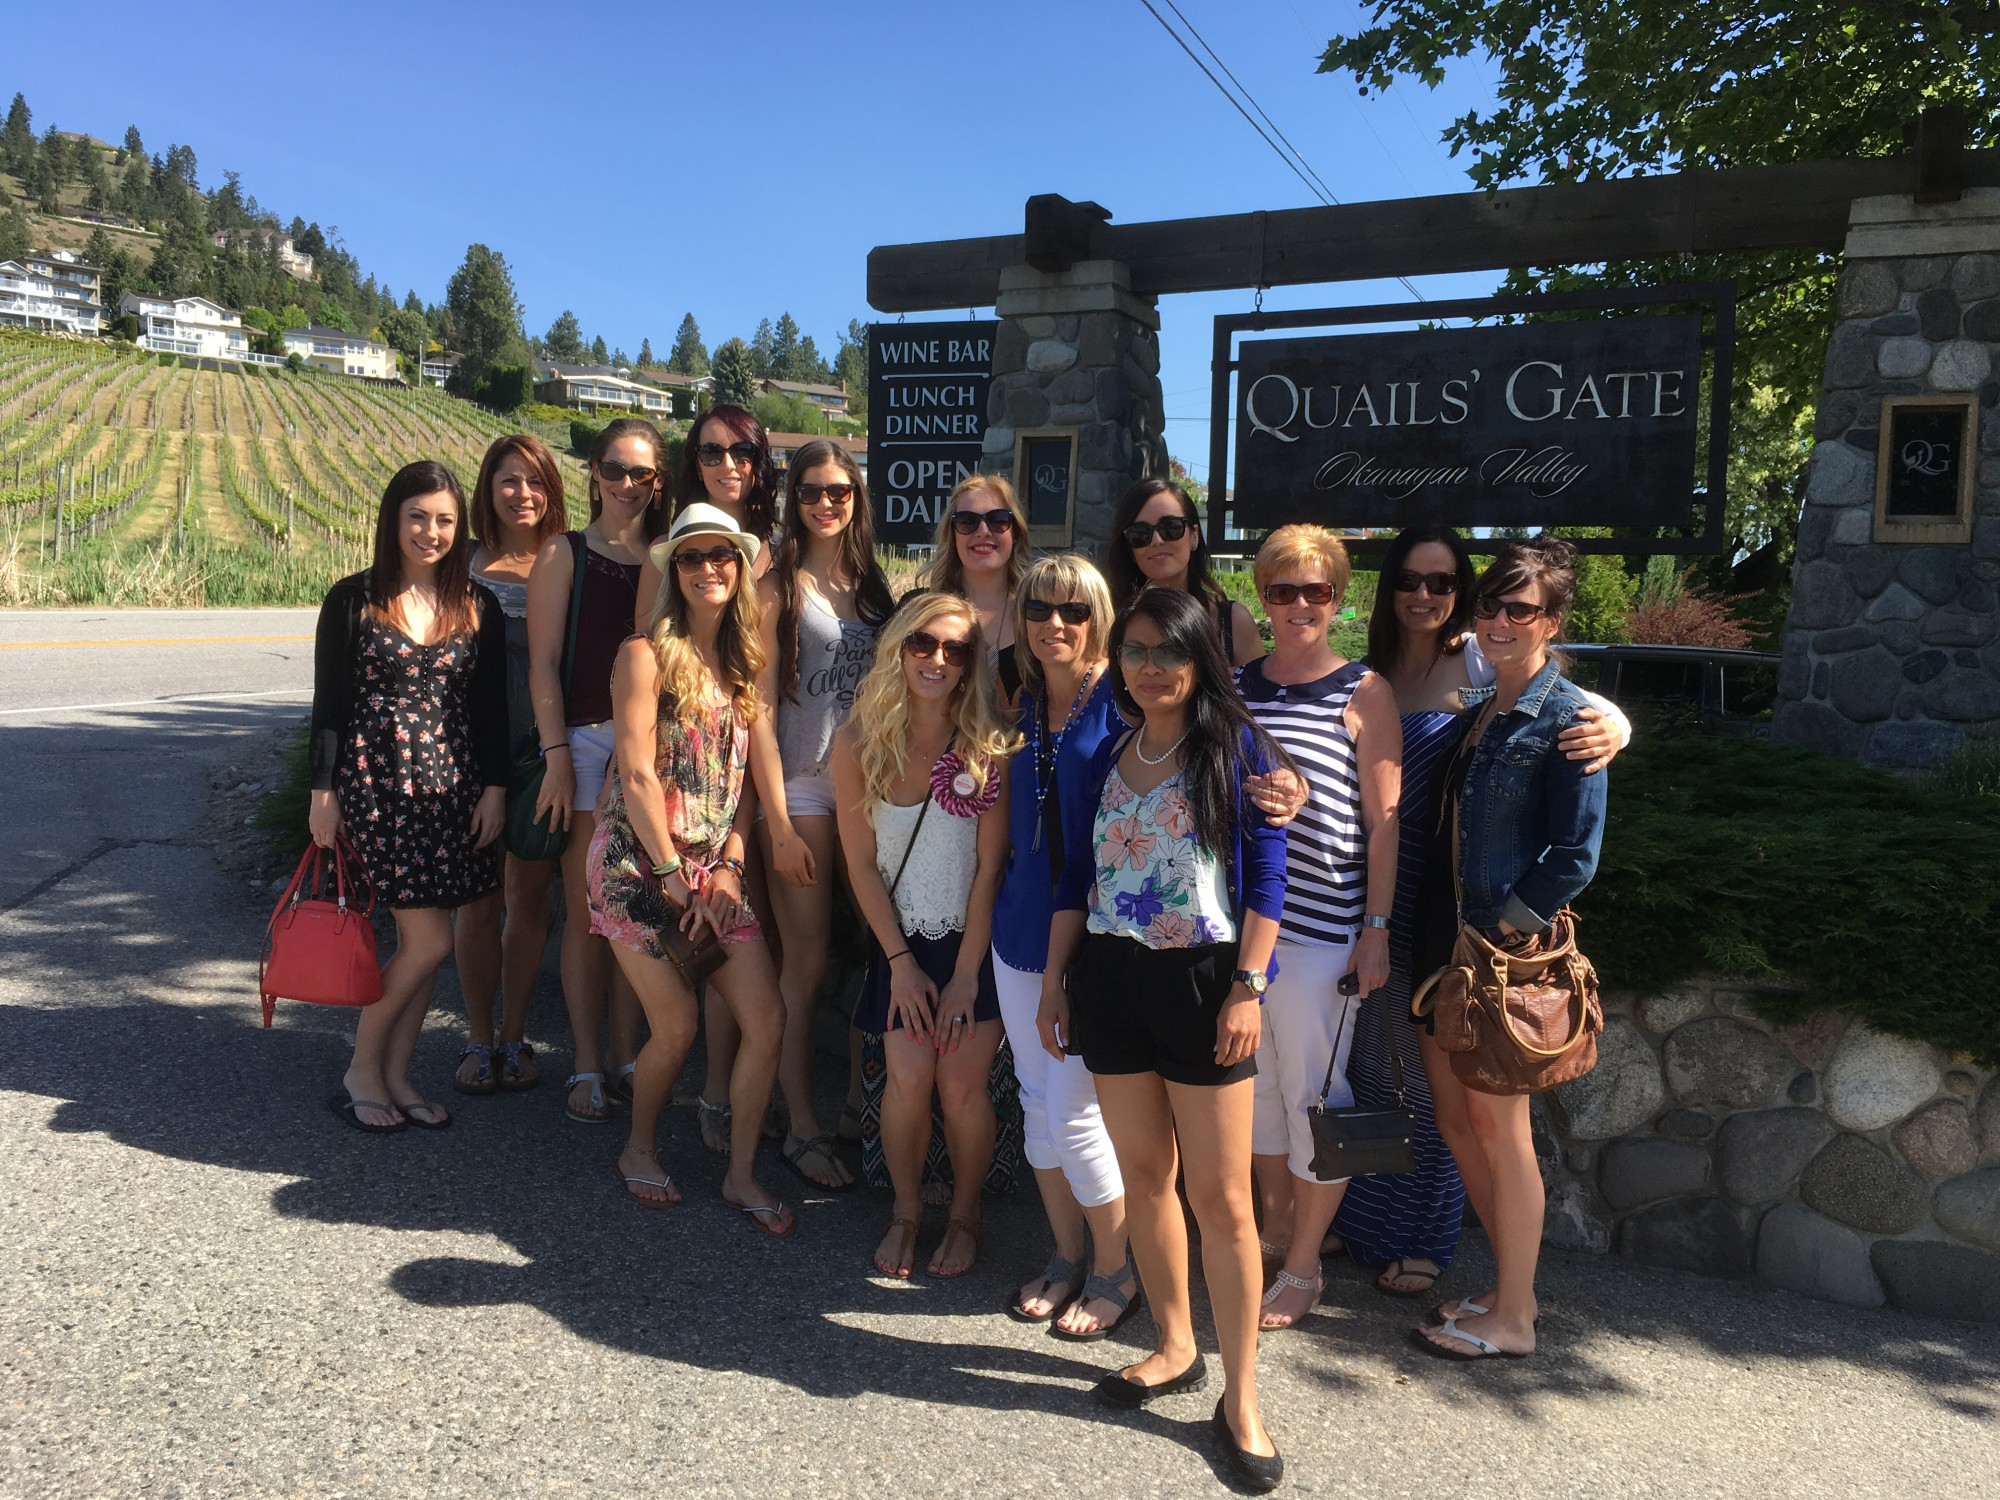 helicopter tours kelowna with Custom Wine Tours Cust May 7 1 on Westside Bench Kelowna Wine Tourglass At Qg likewise Hanger Blog 3 likewise Tours furthermore Charter flights cambridge bay nu additionally Charter flights gjoa haven nu.